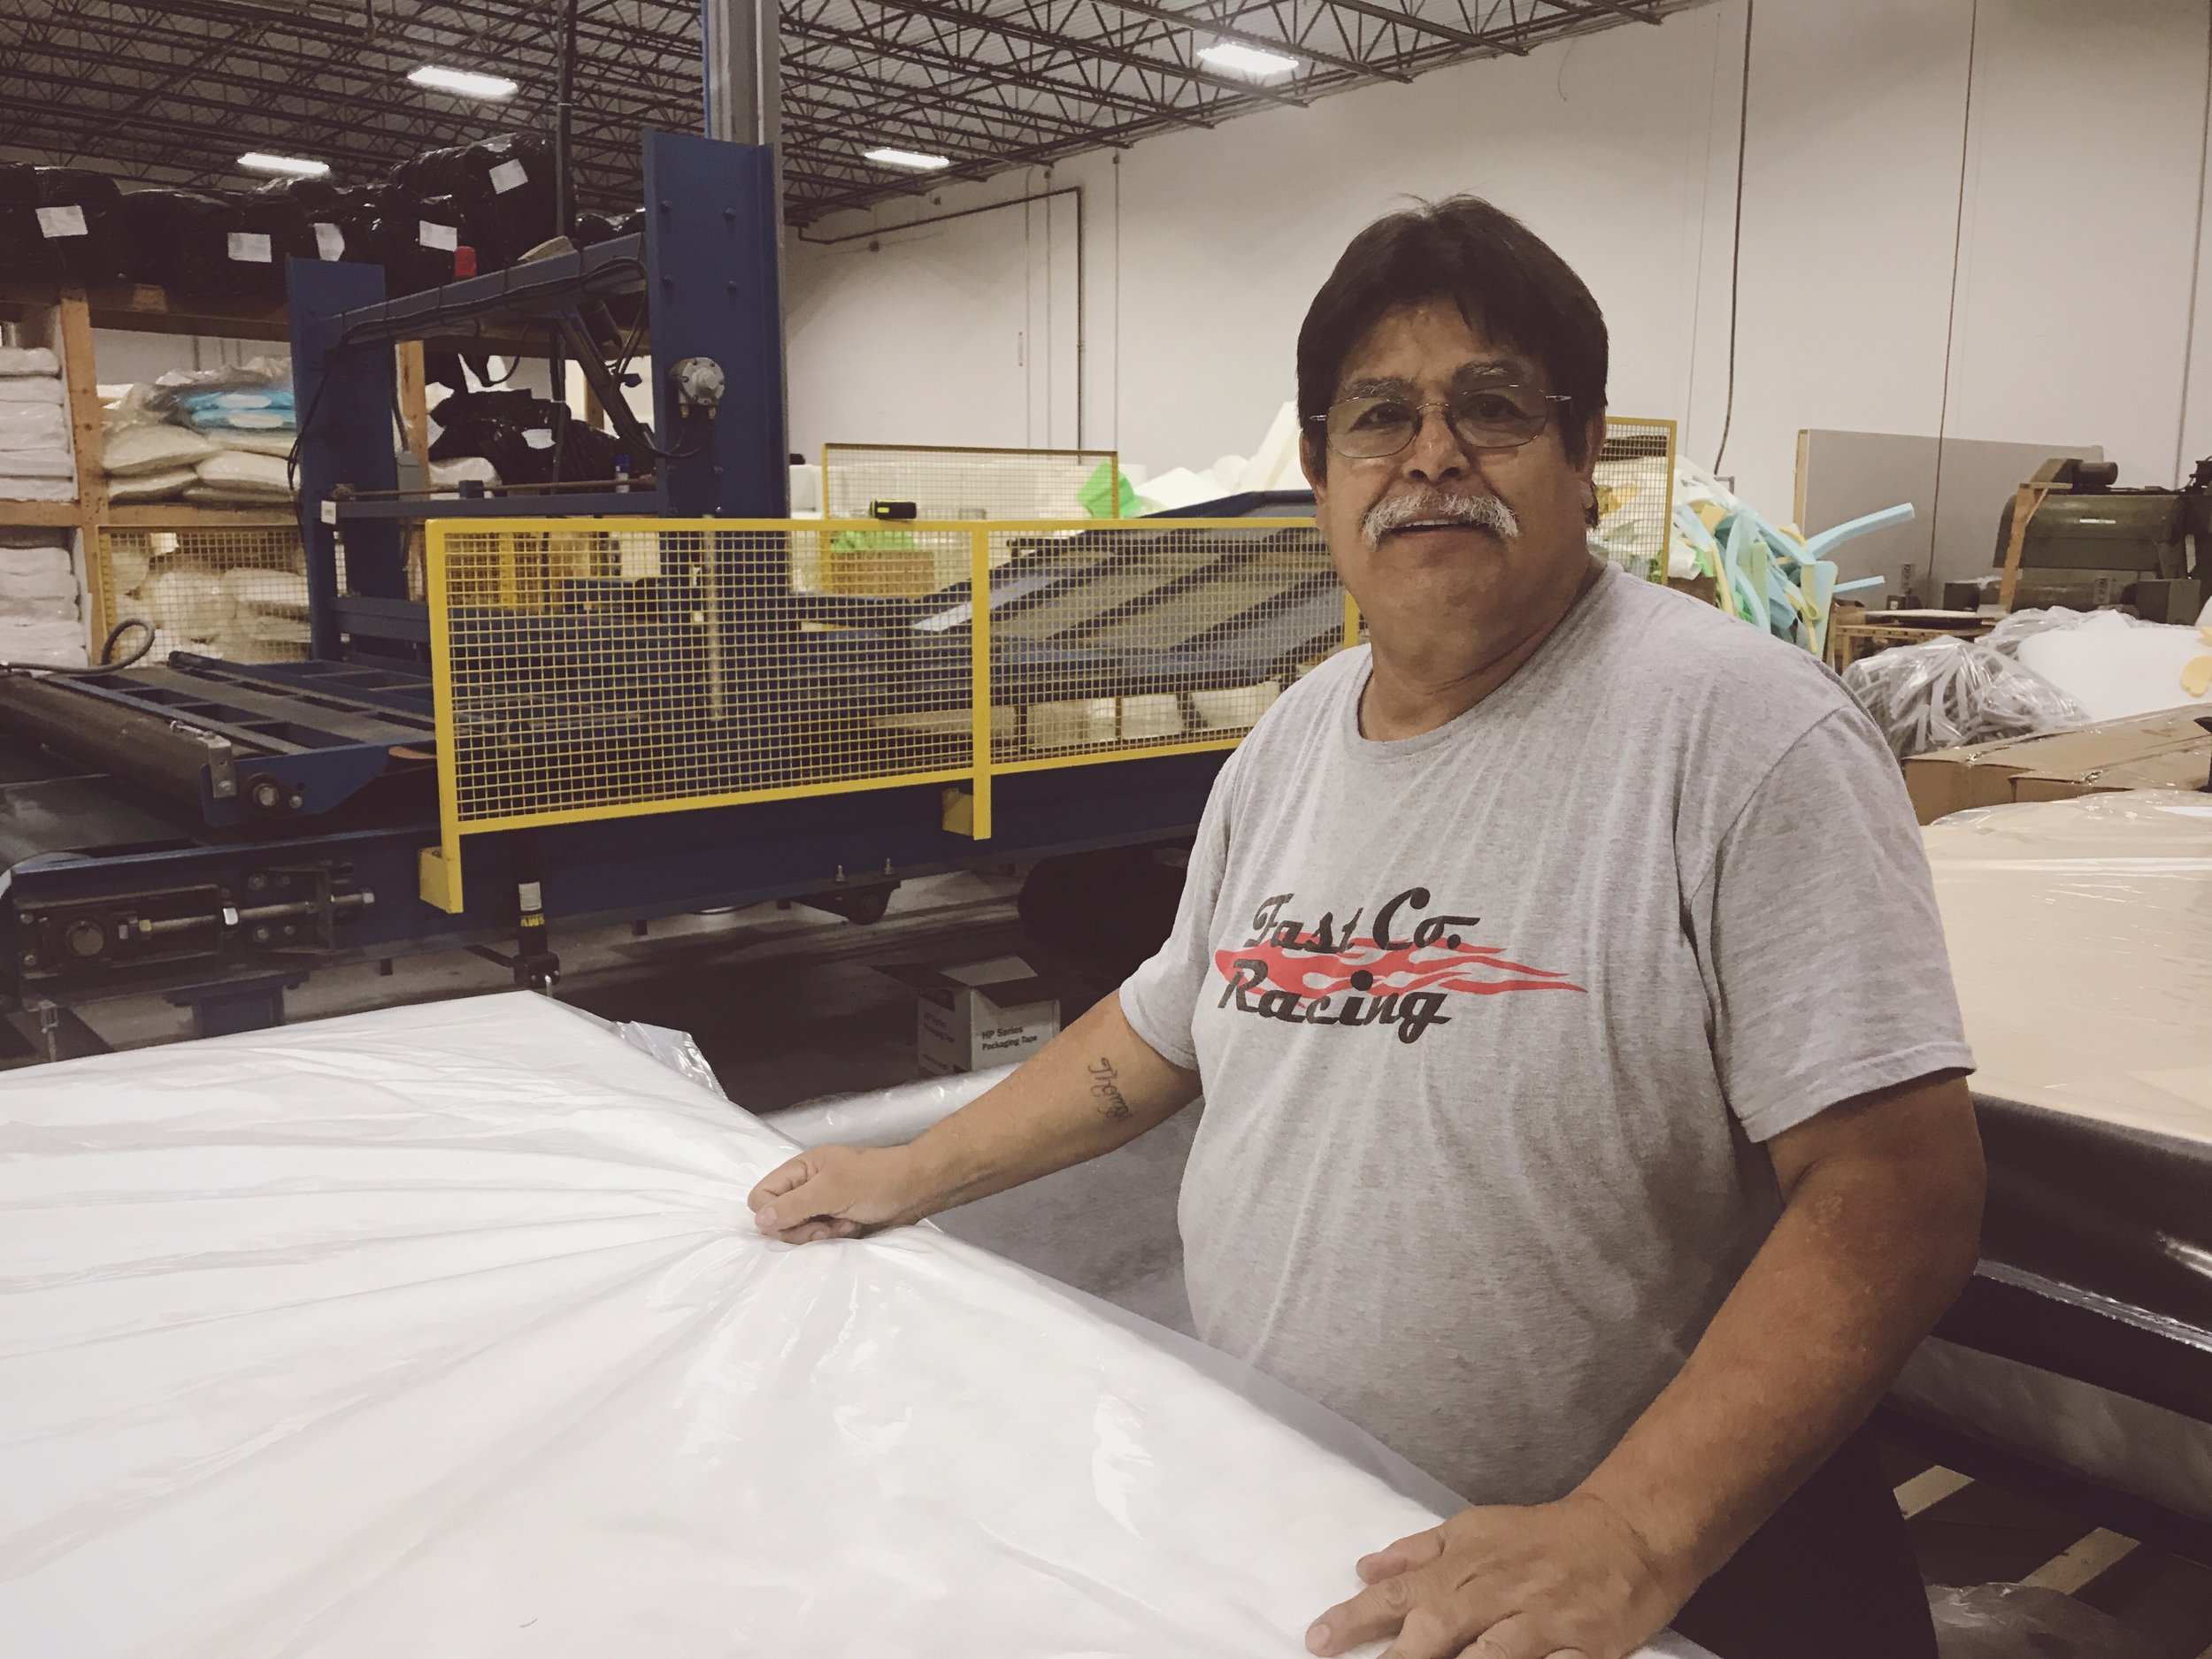 Tom Rodriguez, building mattresses at the Comfort Option headquarters in Indianapolis / Greenfield, Indiana.